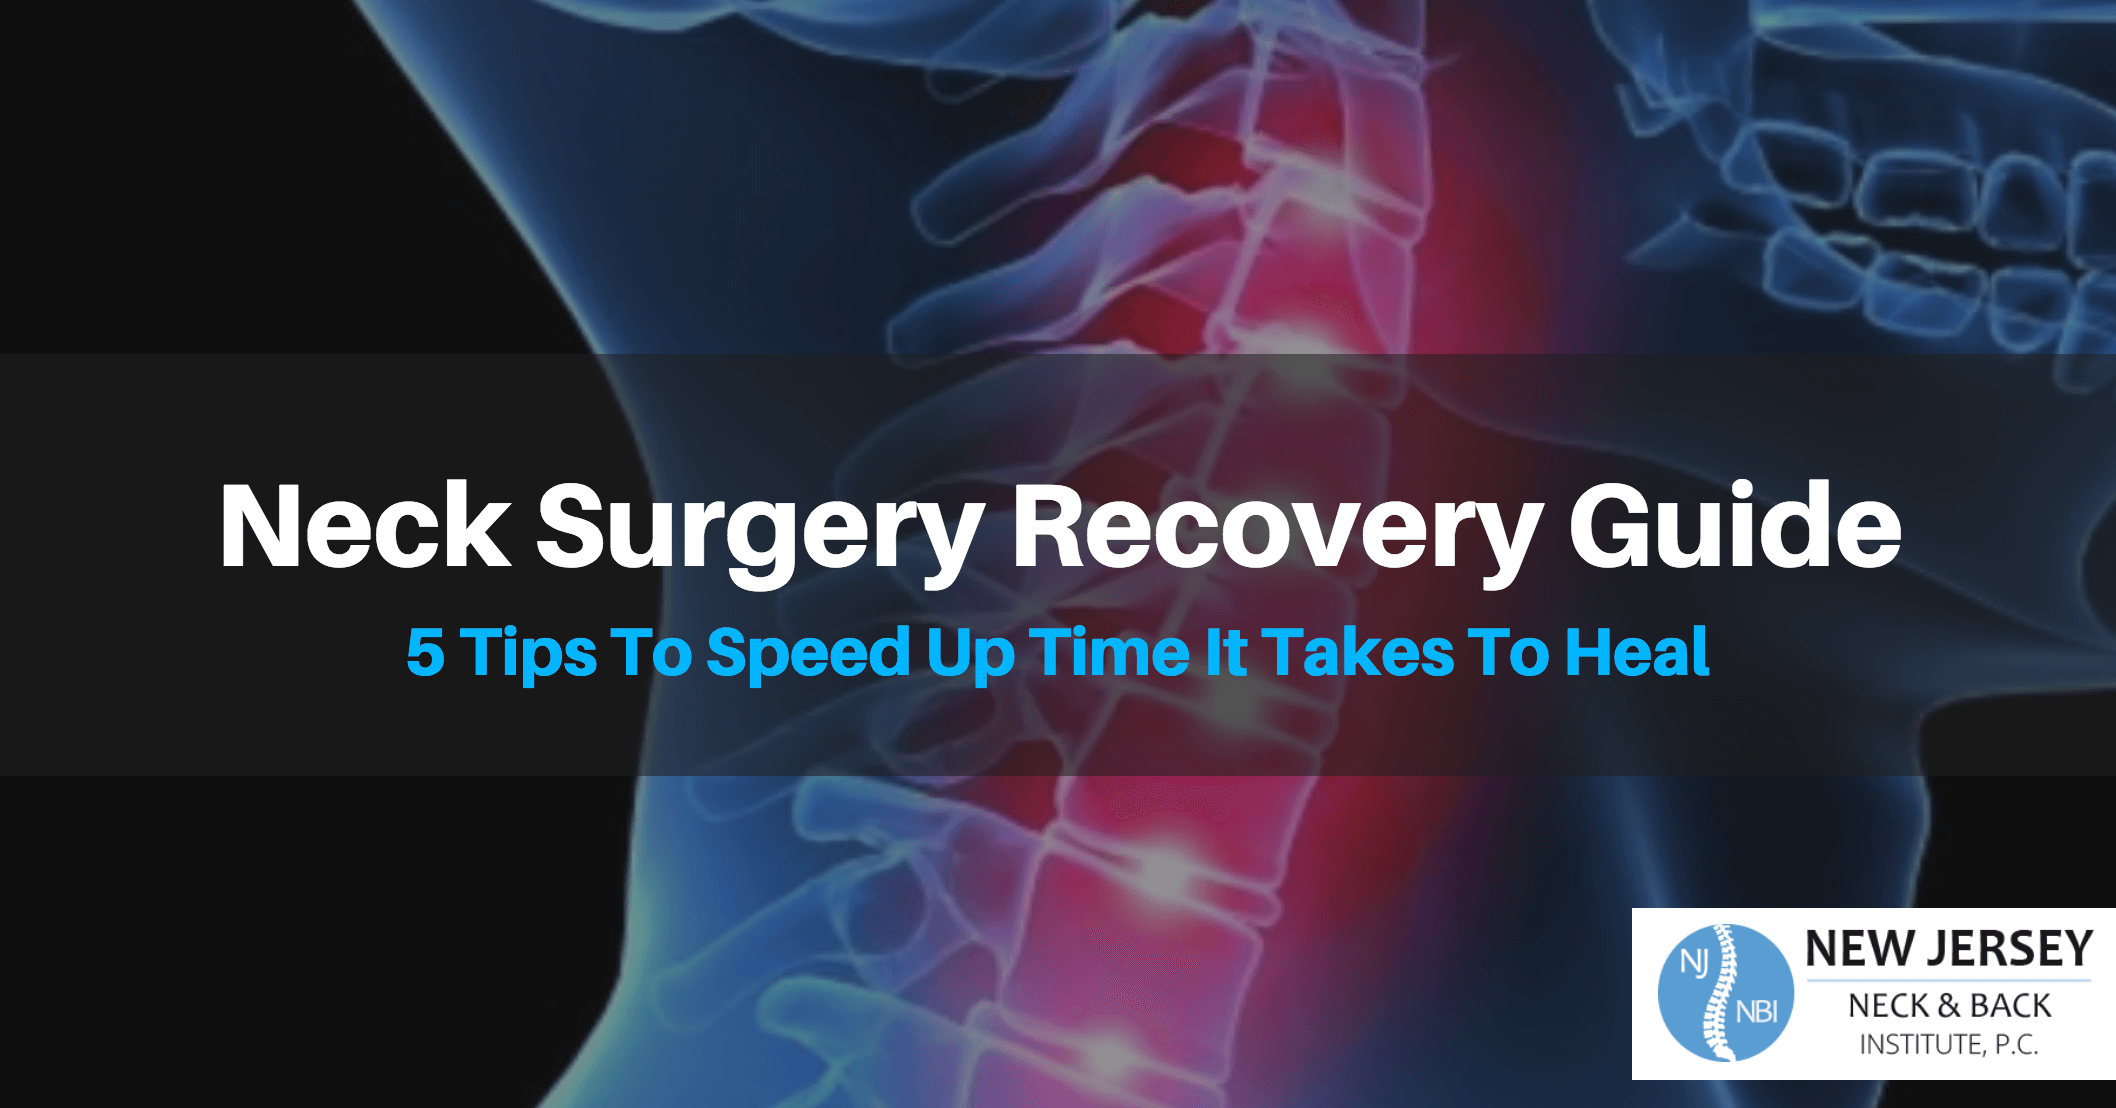 best chair after neck surgery steel transport cervical recovery guide 5 tips to speed up time it takes heal